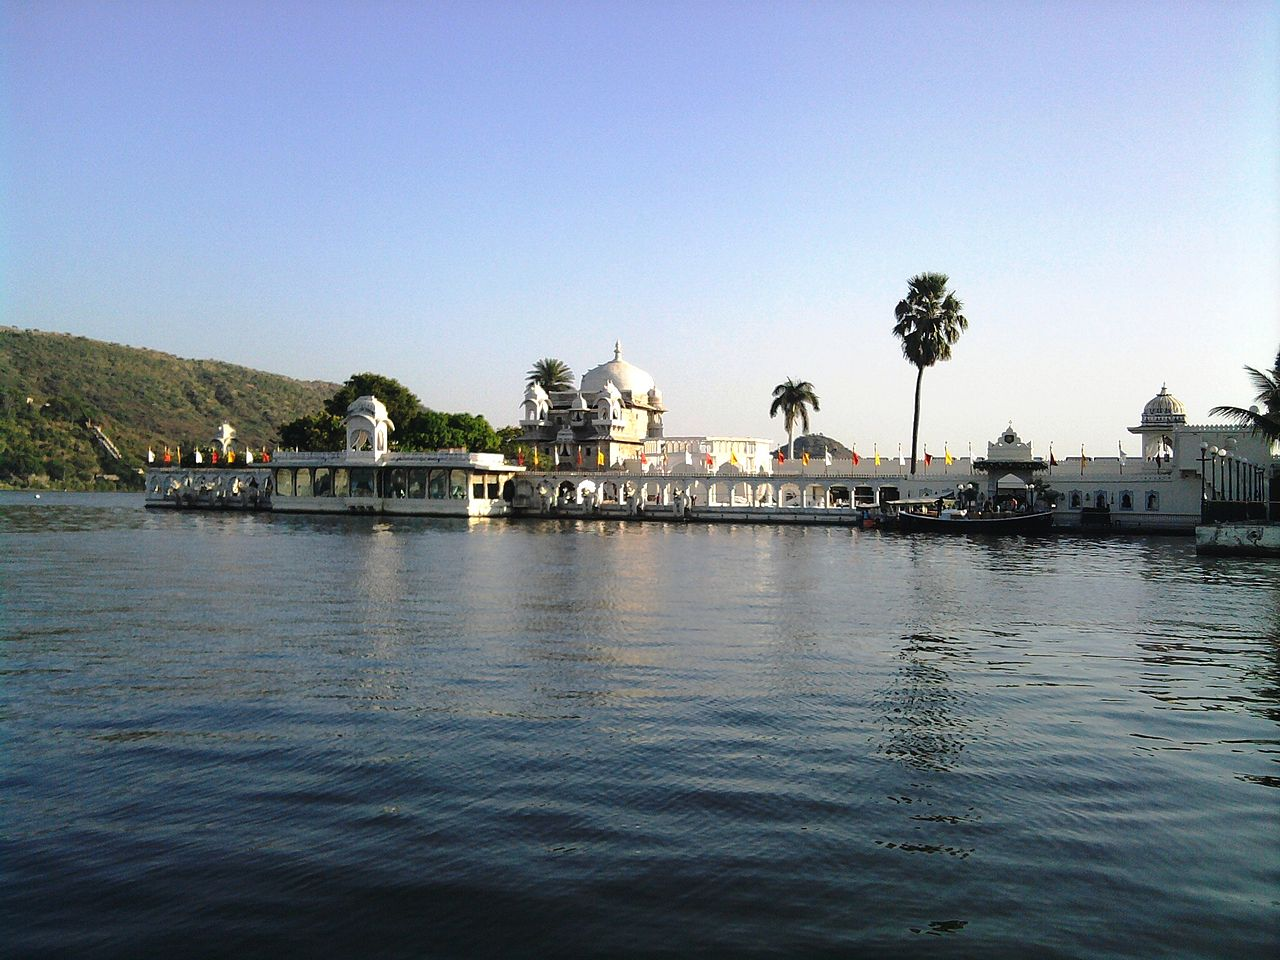 Best Place To Visit In Udaipur-Jag Mandir Palace